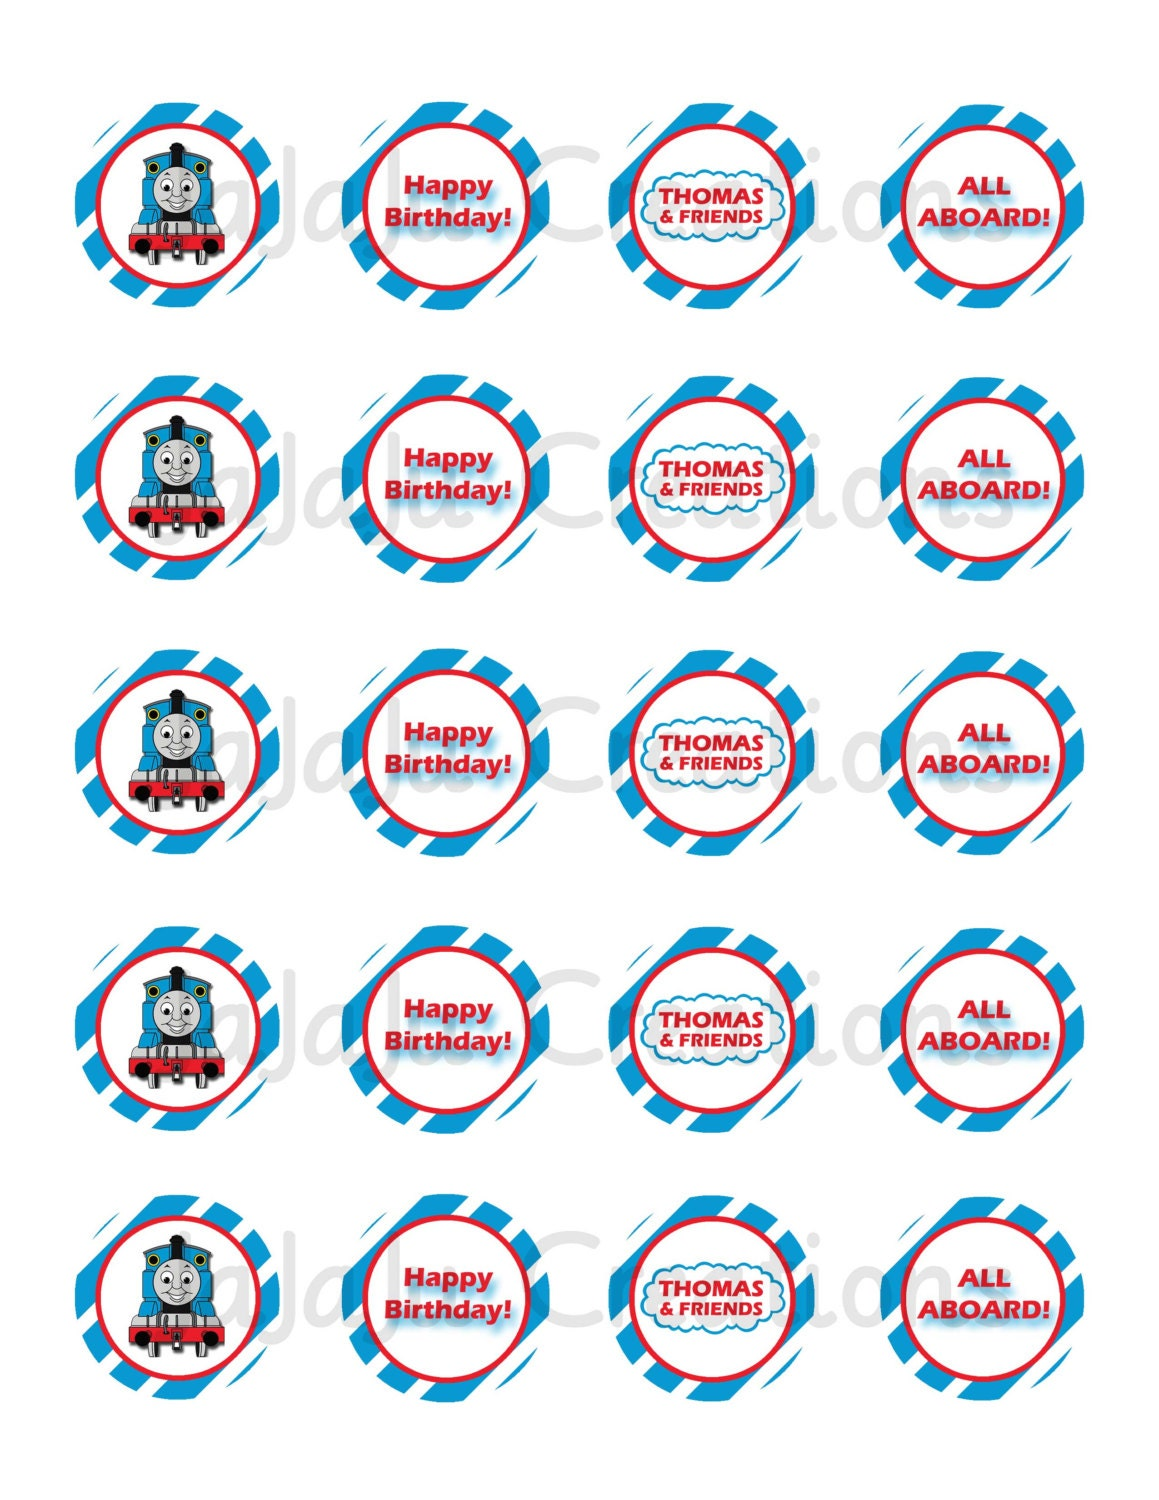 This is an image of Fan Free Printable Thomas the Train Cup Cake Toppers